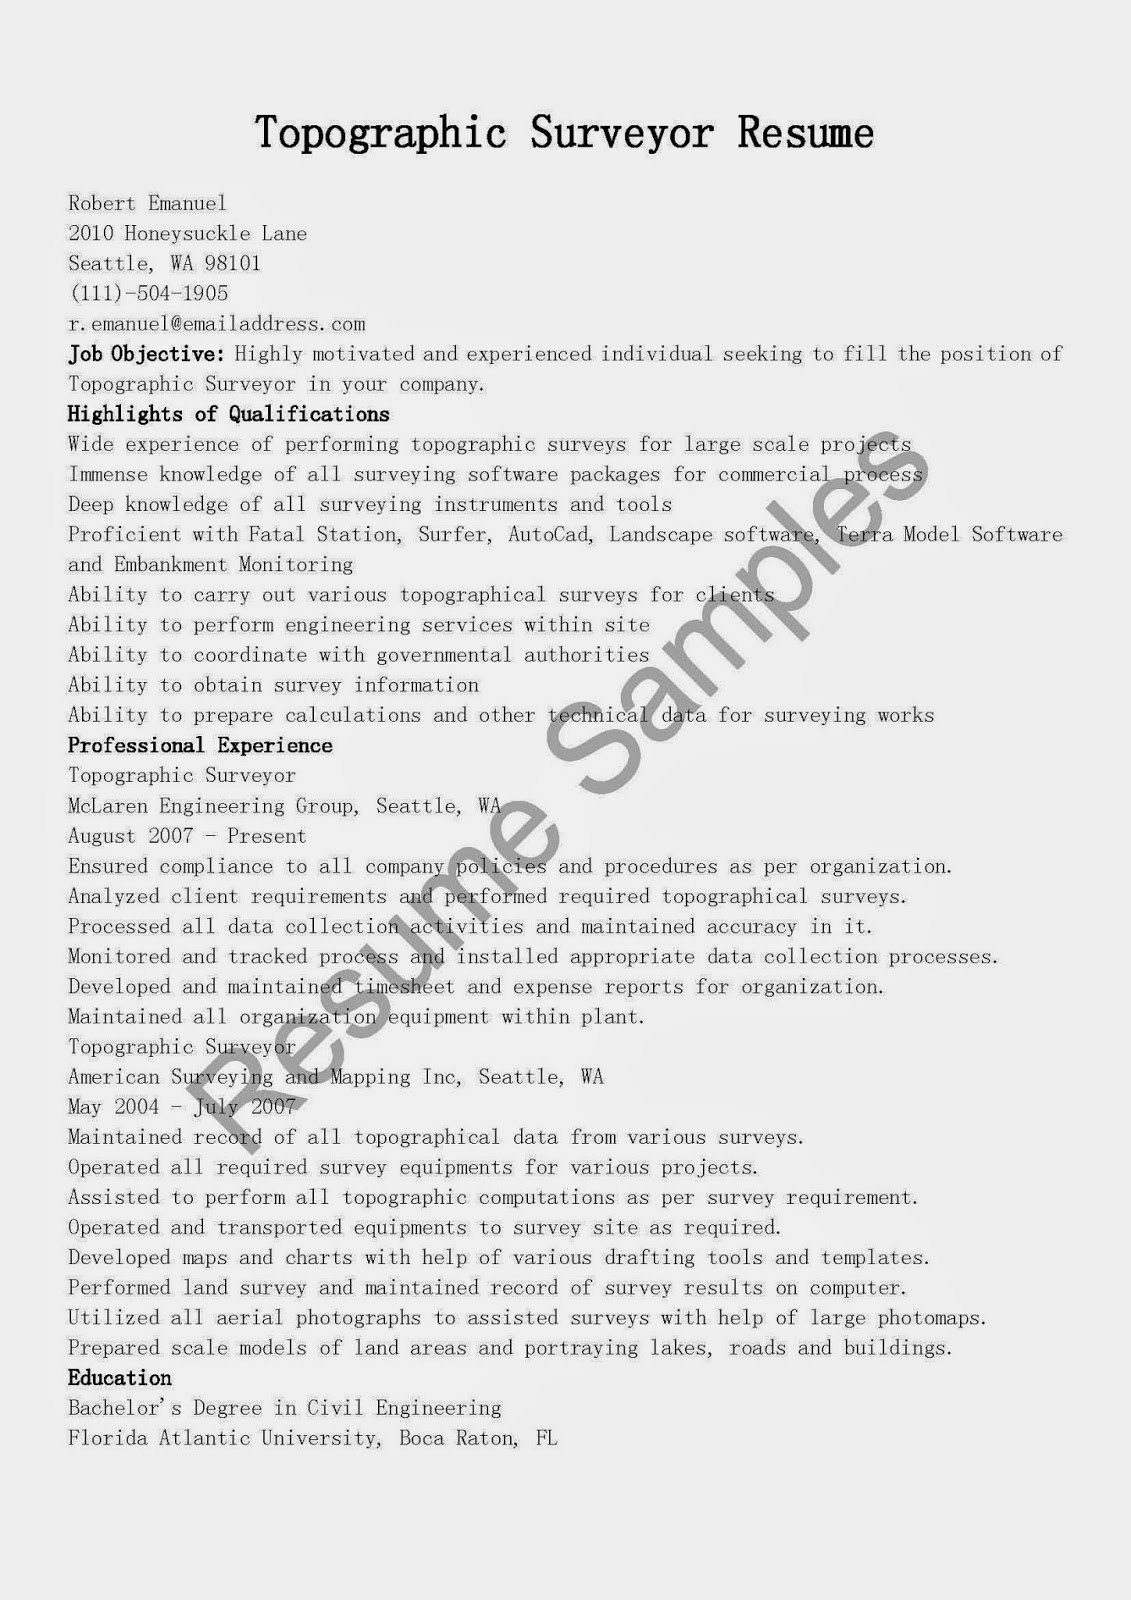 Resume Samples Assistant Surveyor Resume Sample